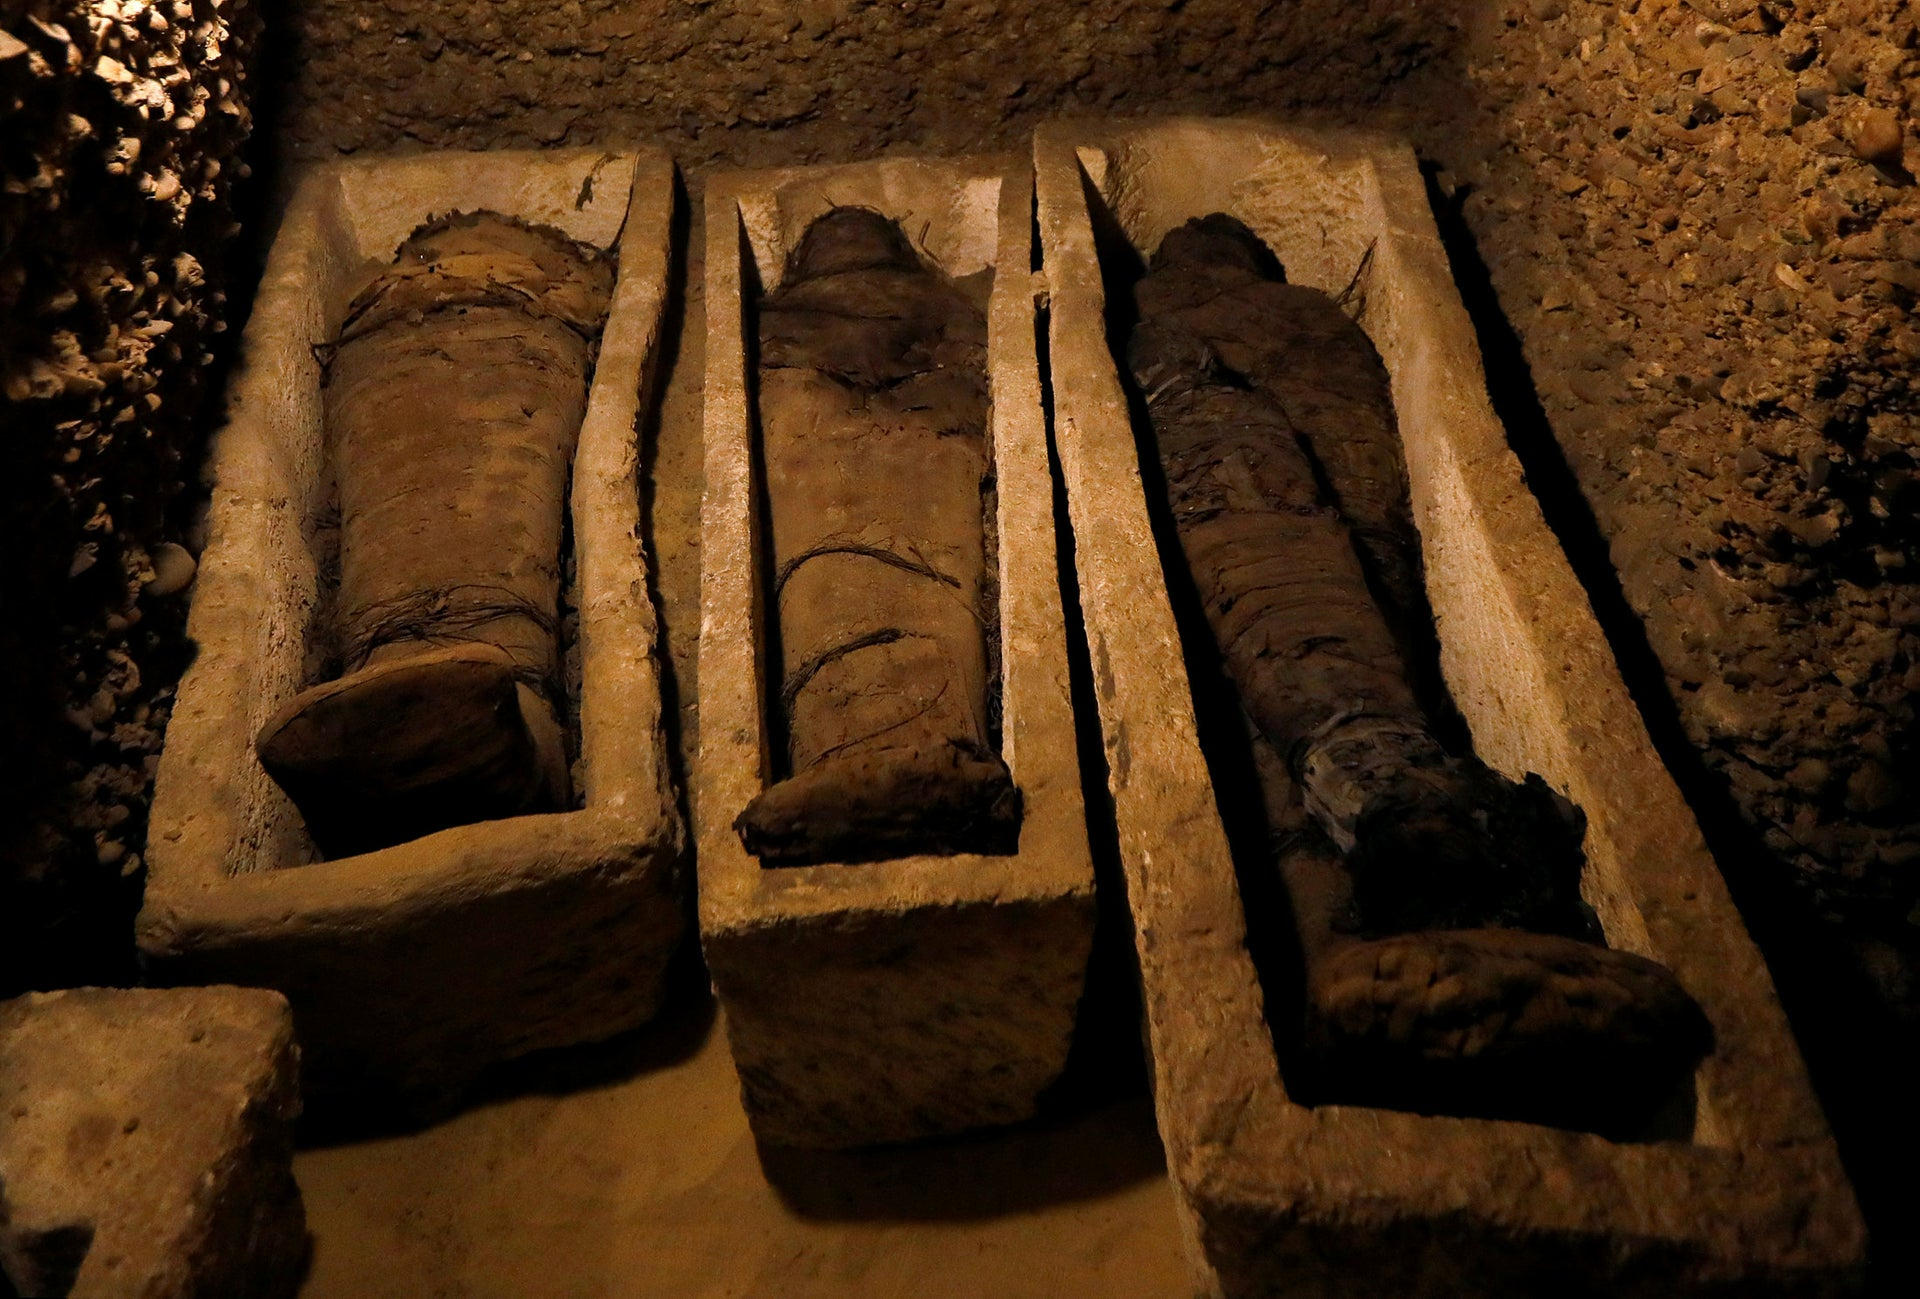 Mummies are seen inside a tomb during the presentation of a new discovery at Tuna el-Gebel archaeological site in Minya Governorate, Egypt, February 2, 2019.